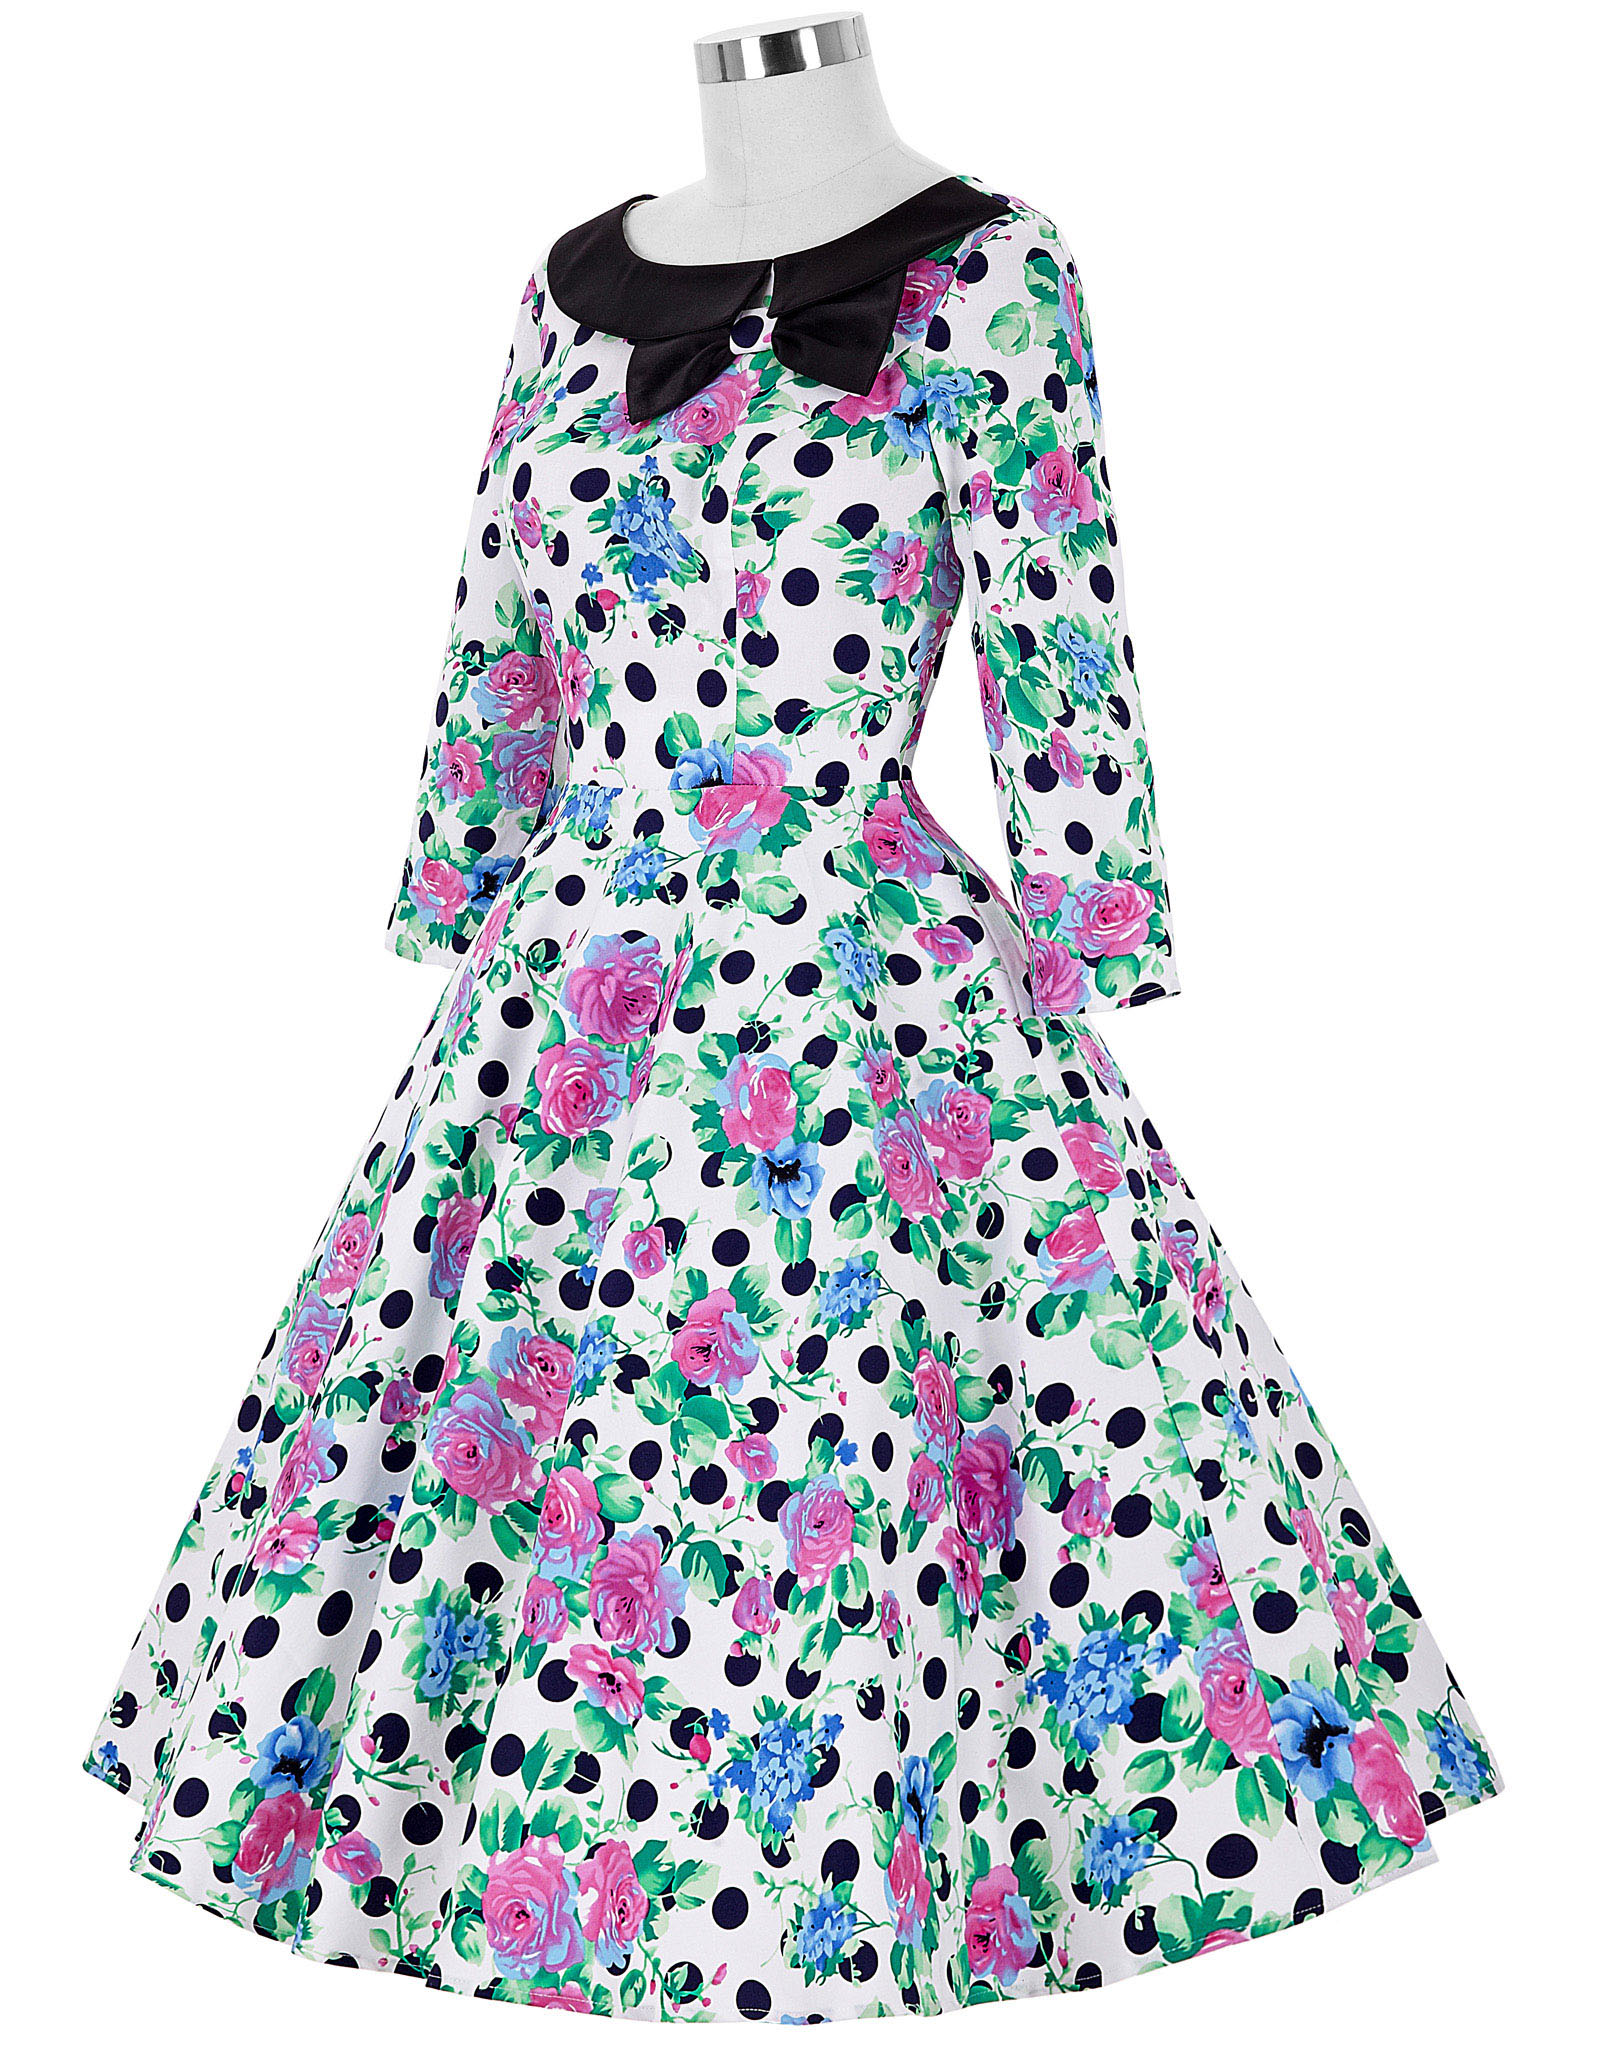 50s 60s 3/4 Sleeve Polka Dots Retro Vintage Party Picnic Swing Housewife Dress